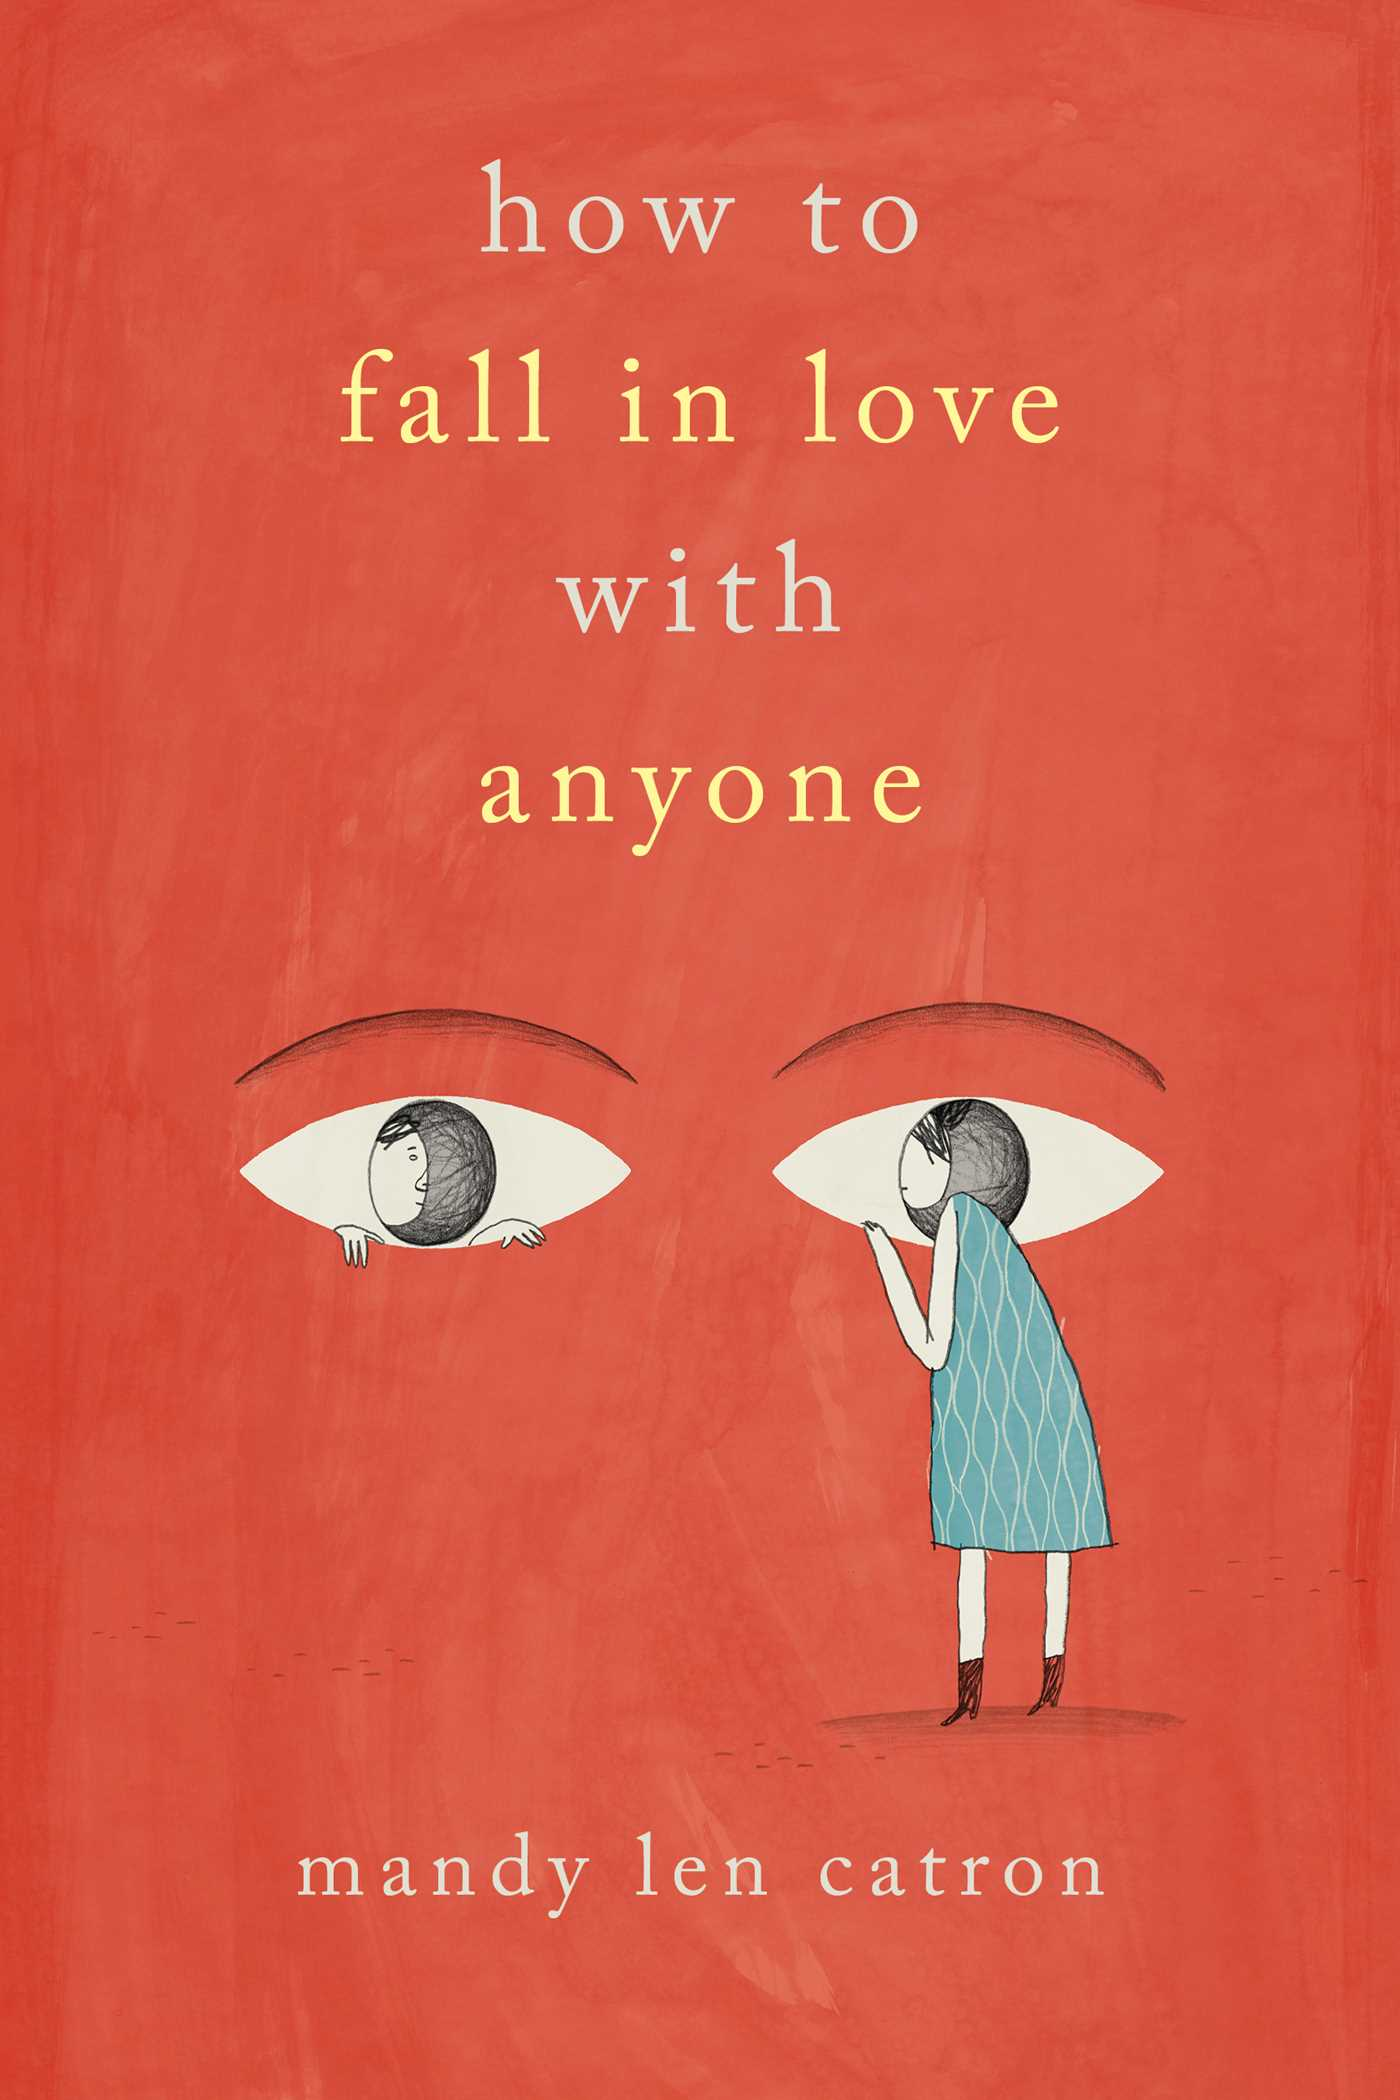 How to Fall in Love with Anyone  Book by Mandy Len Catron